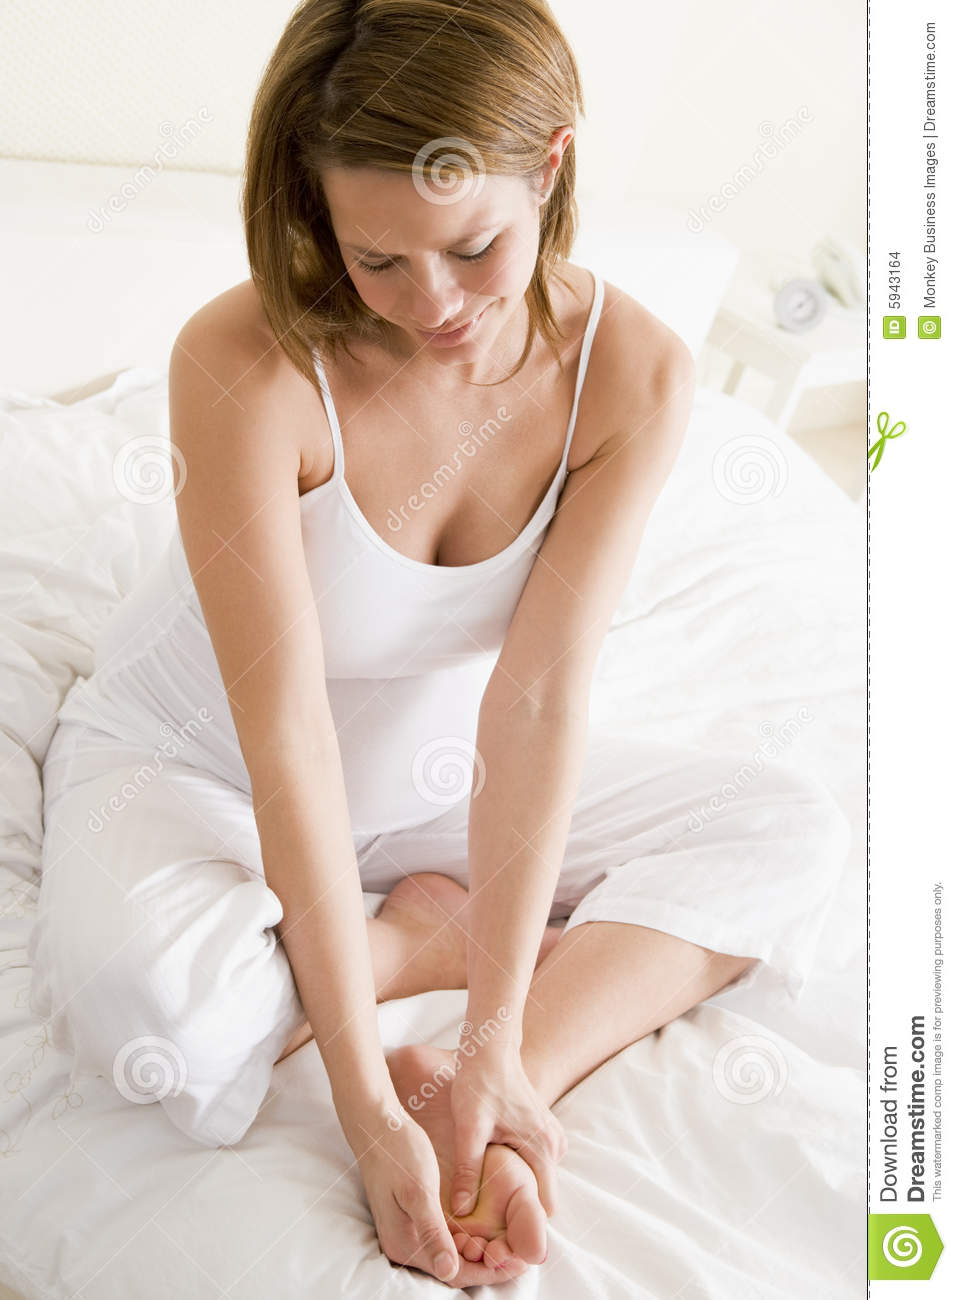 Bed feet pregnant rubbing smiling woman